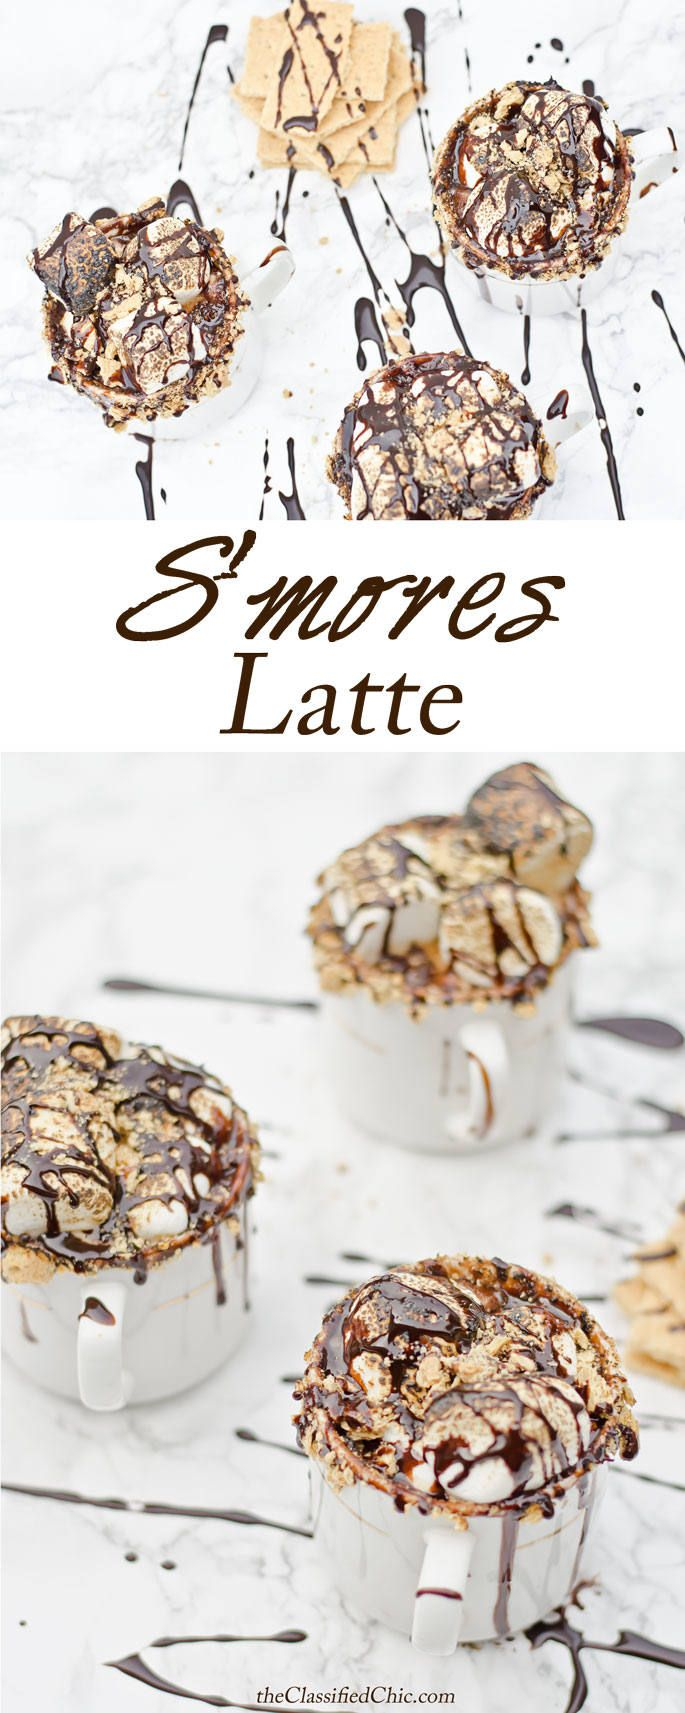 How to Make a Smores Latte   The Classified Chic